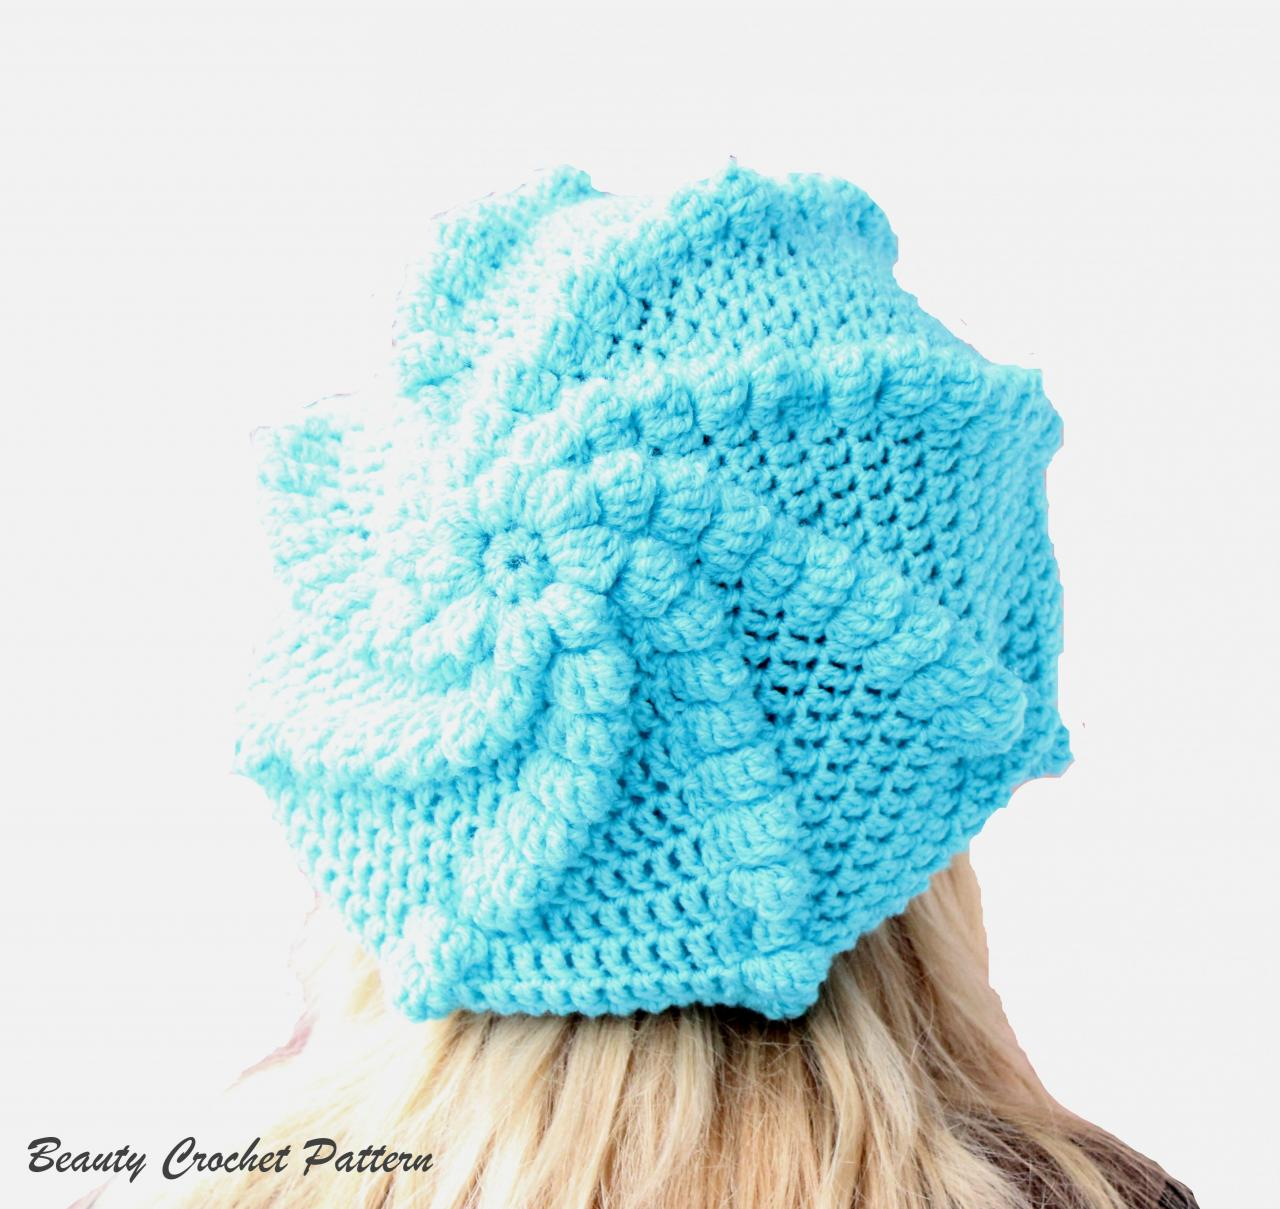 Crochet Patterns Slouchy Beanie : ... pattern crochet slouchy beanie pattern crochet slouchy hat pattern